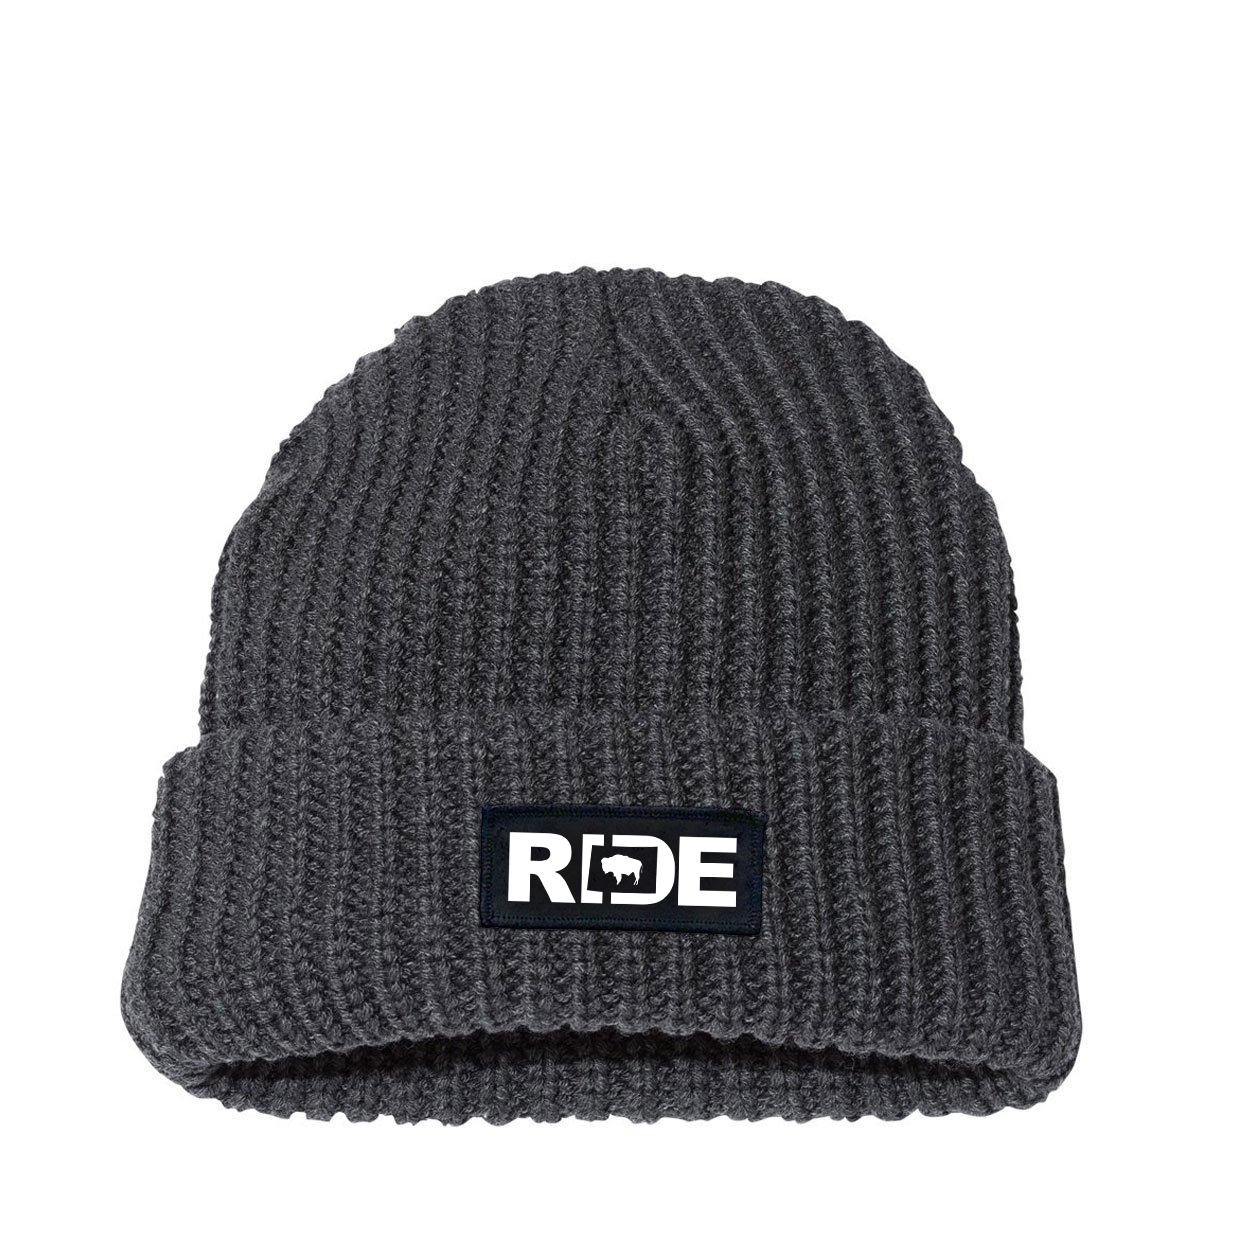 Ride Wyoming Night Out Woven Patch Roll Up Jumbo Chunky Knit Beanie Charcoal (White Logo)